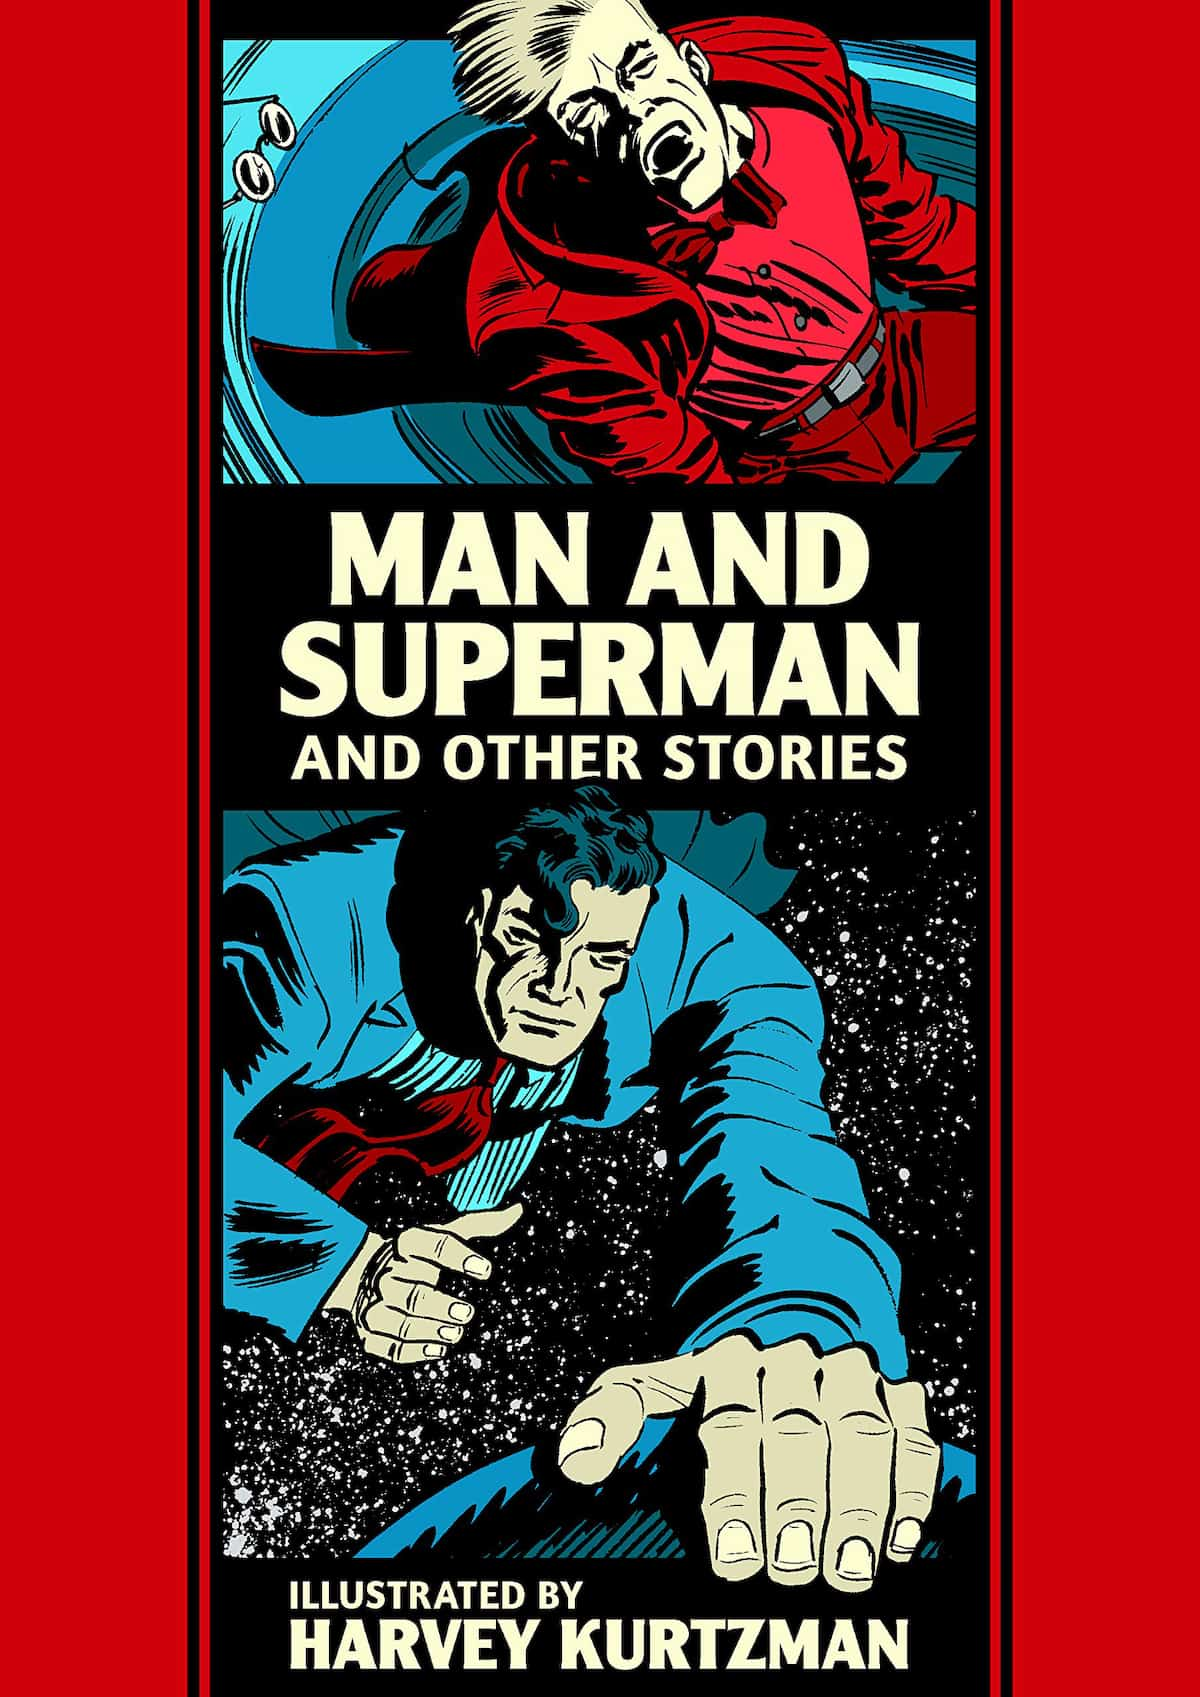 Man and superman and other stories